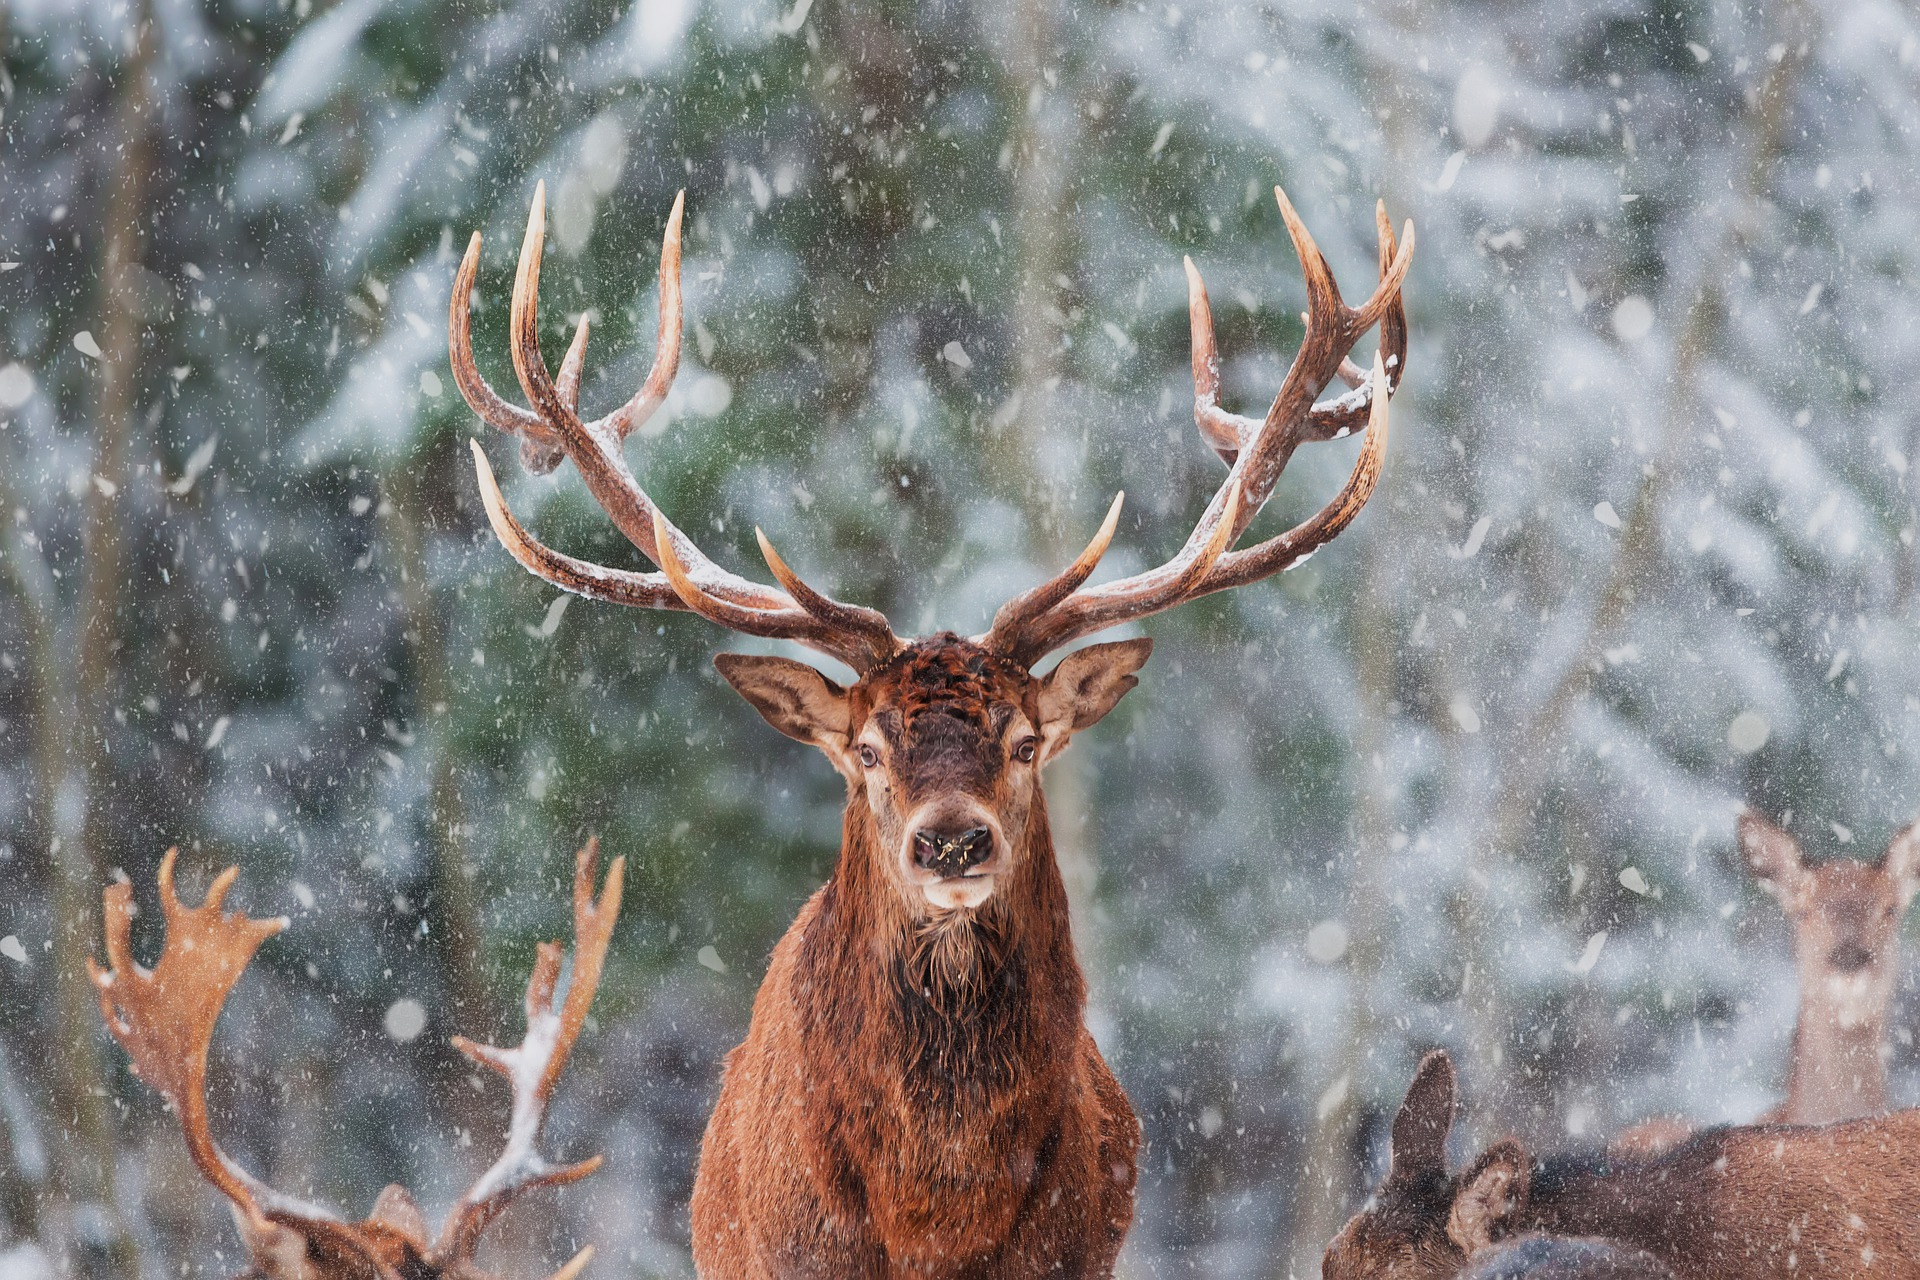 The Stag and his Glorious Crown